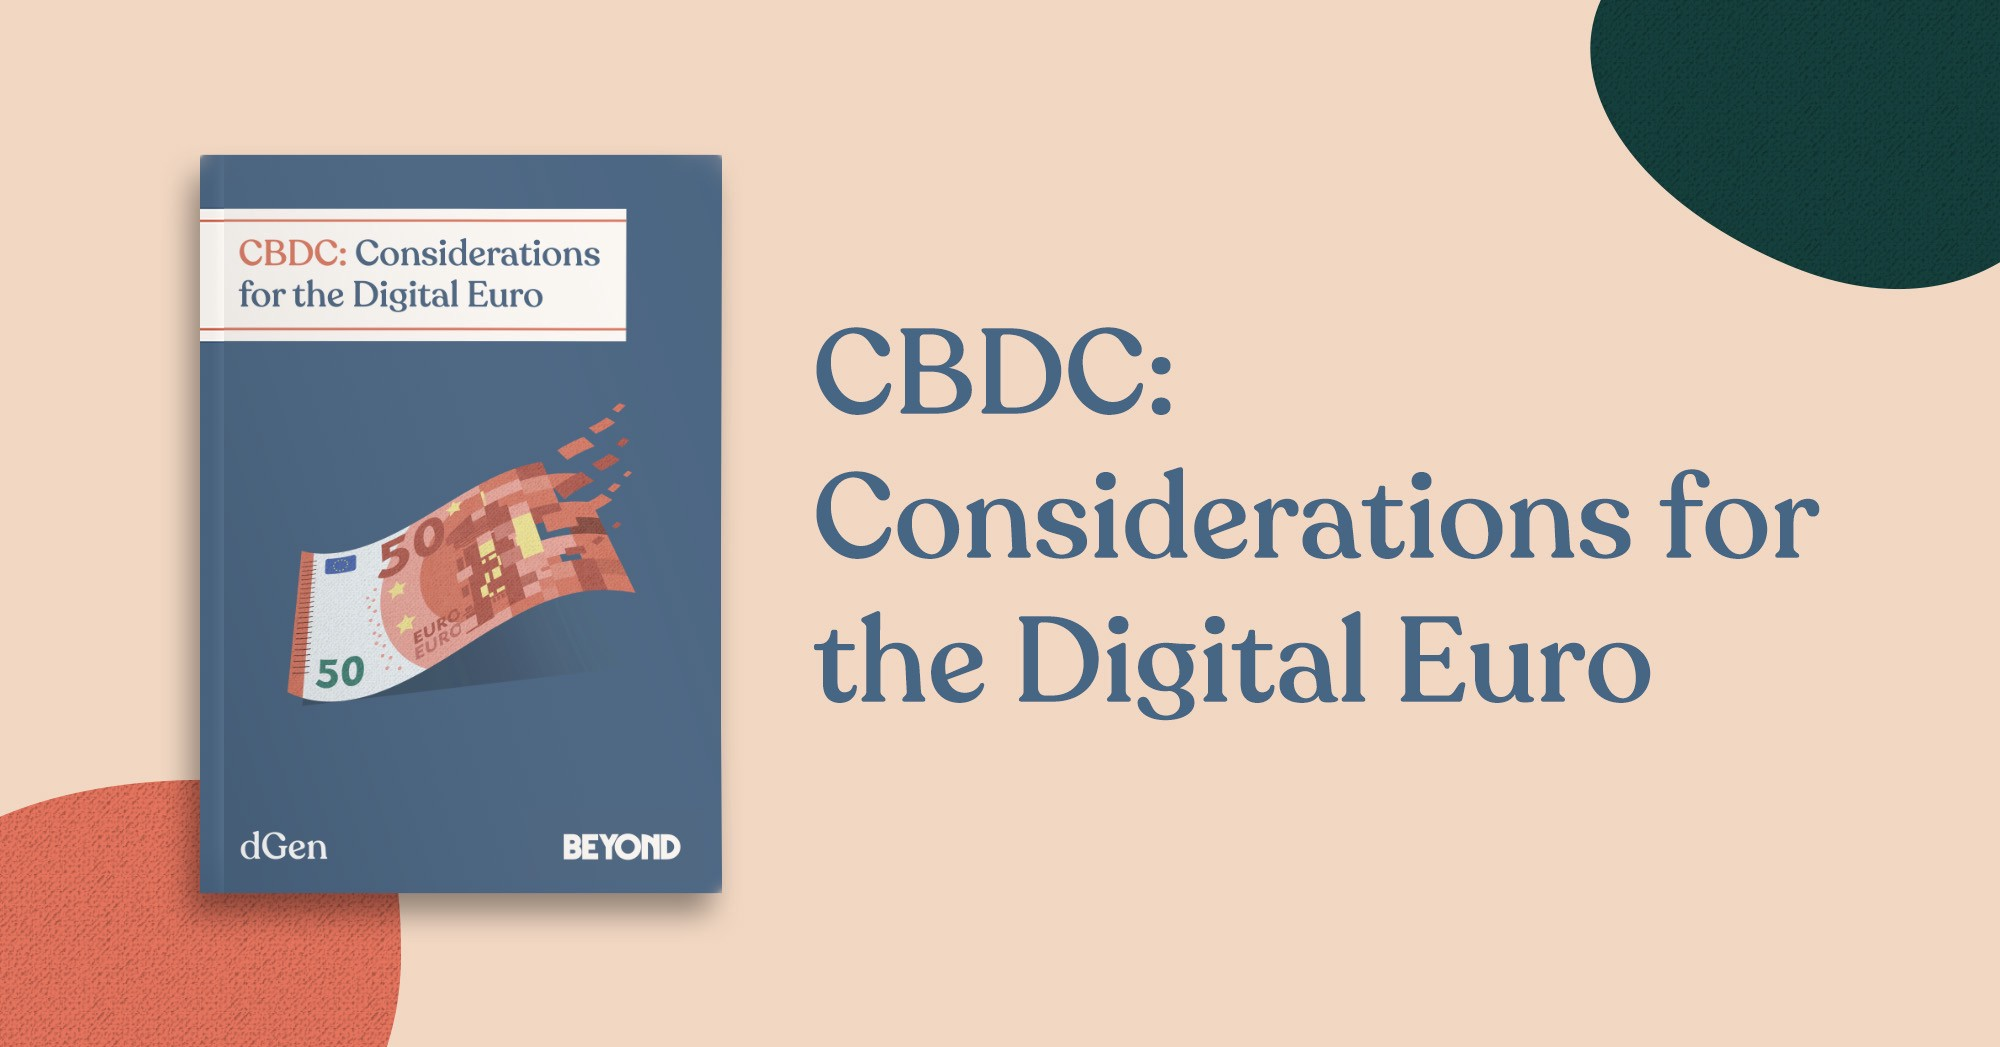 https://www.dgen.org/cbdc — dGen — Digital Euro report